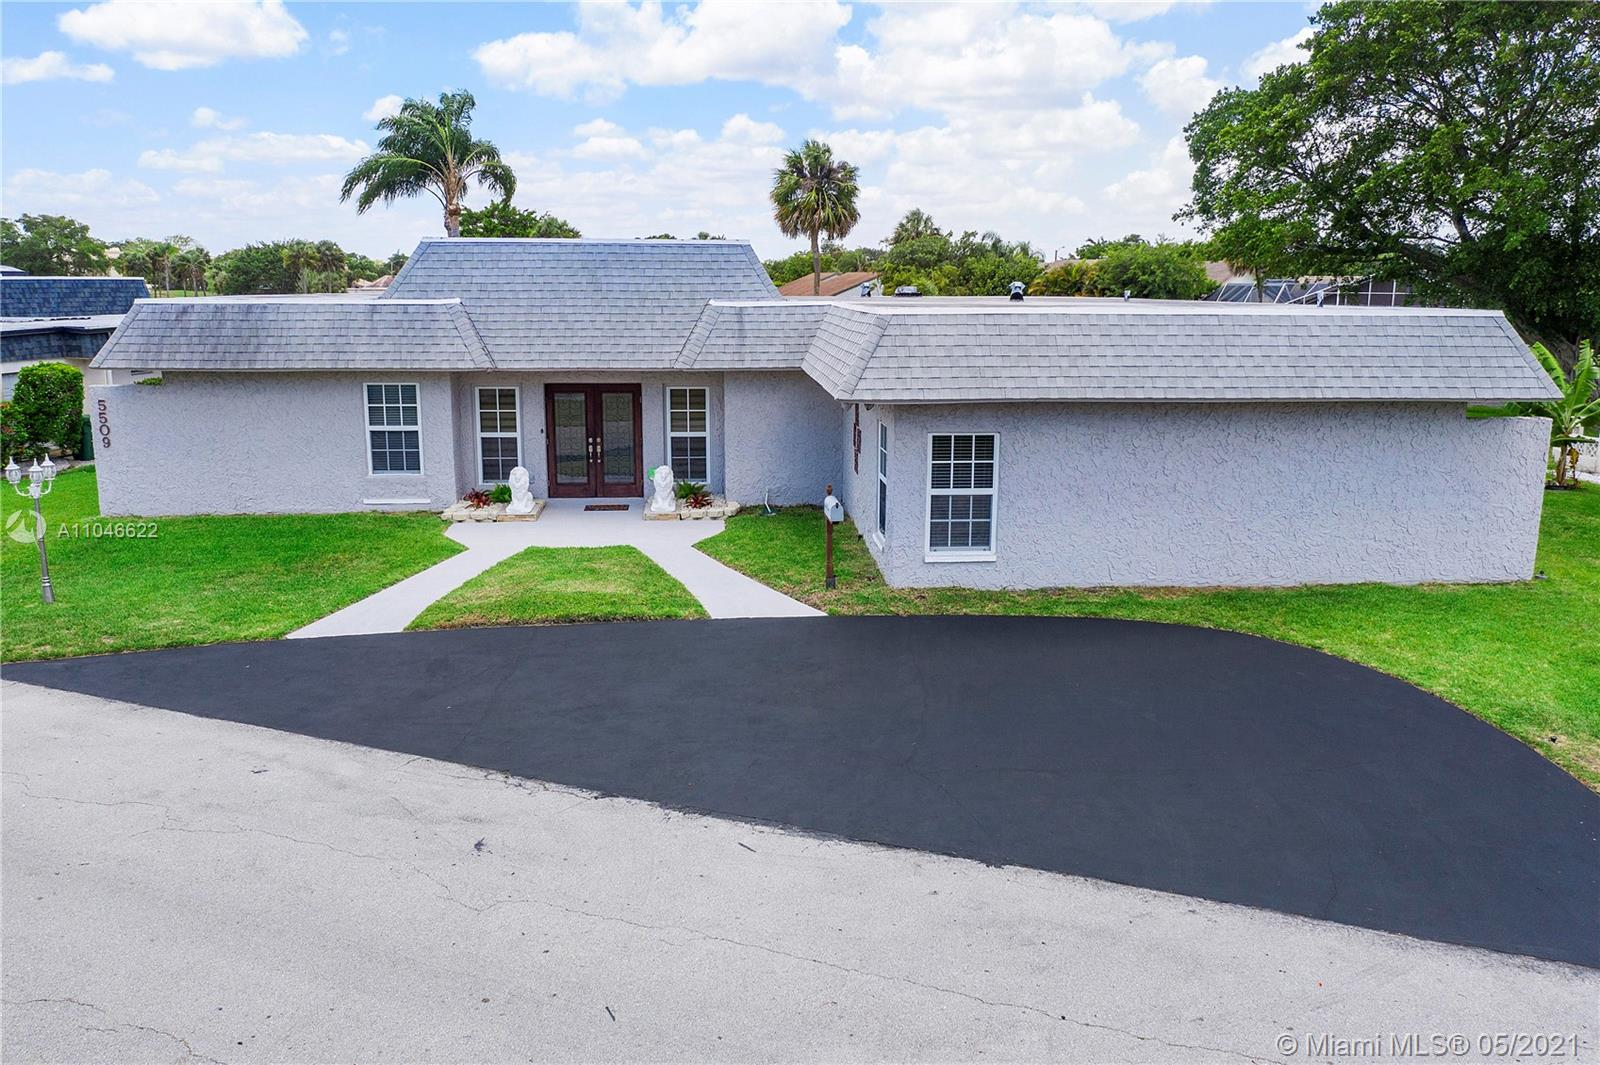 Property for sale at 5509 Mulberry Dr, Tamarac,  Florida 33319